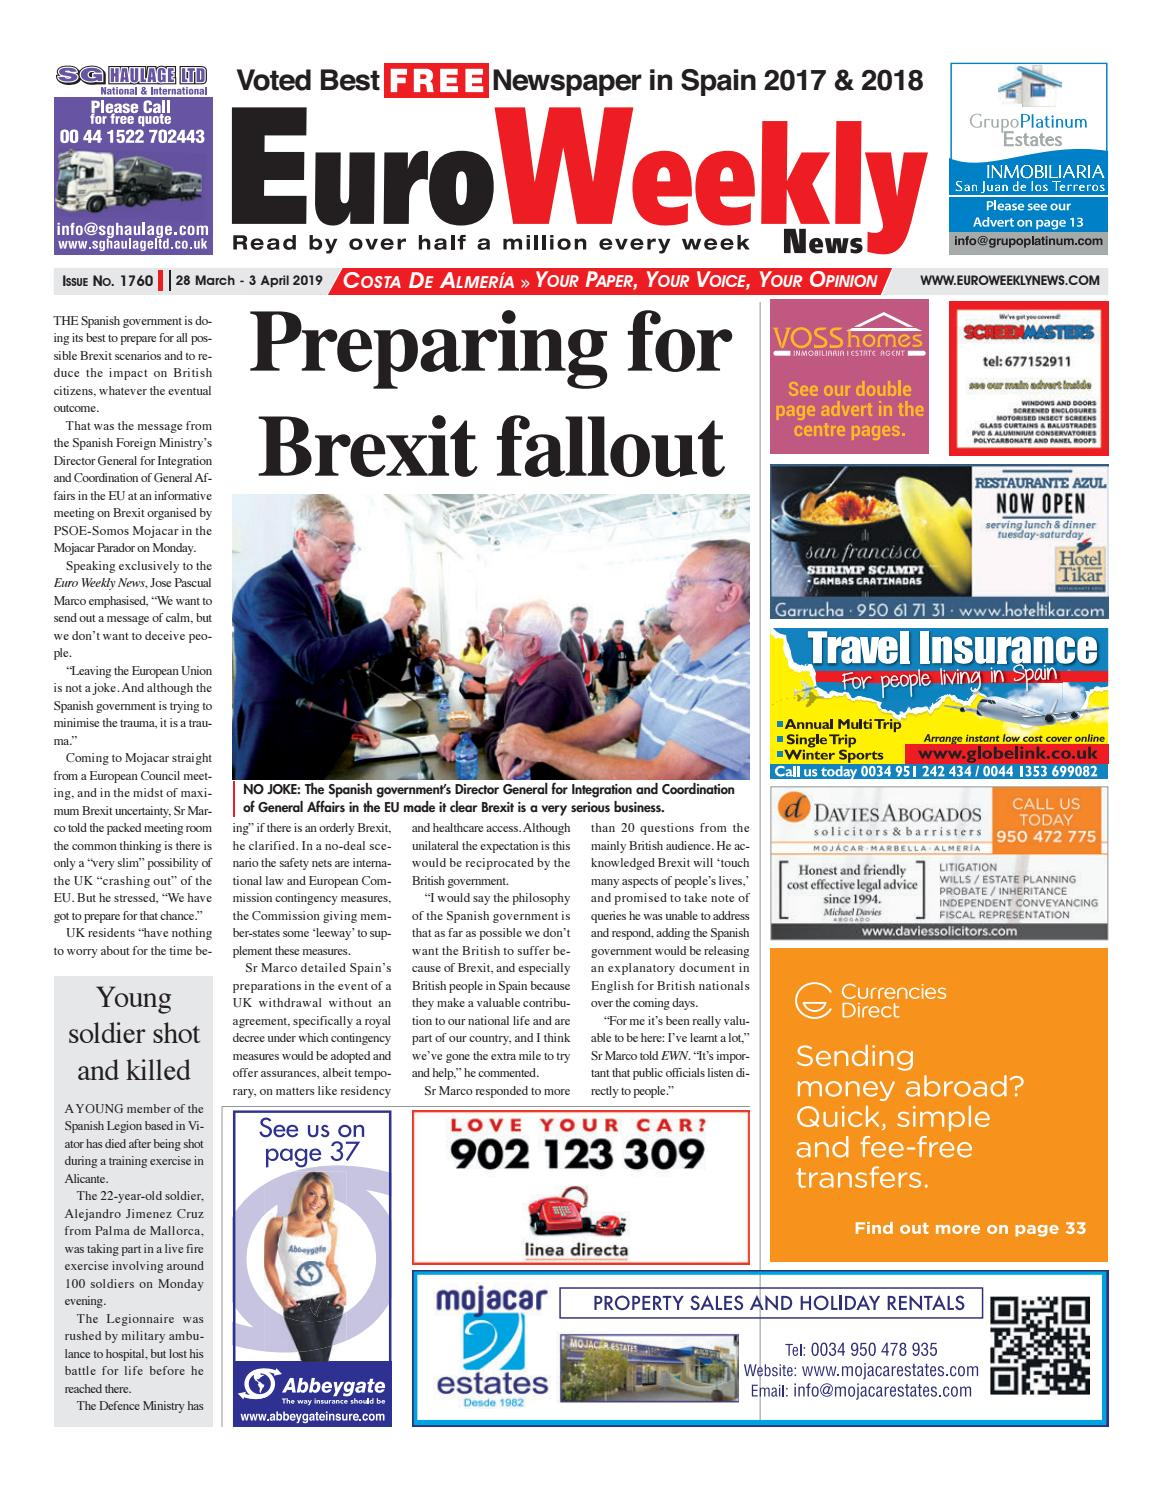 1c2a4c2ca9 Euro Weekly News - Costa de Almeria 28 March - 3 April 2019 Issue 1760 by  Euro Weekly News Media S.A. - issuu